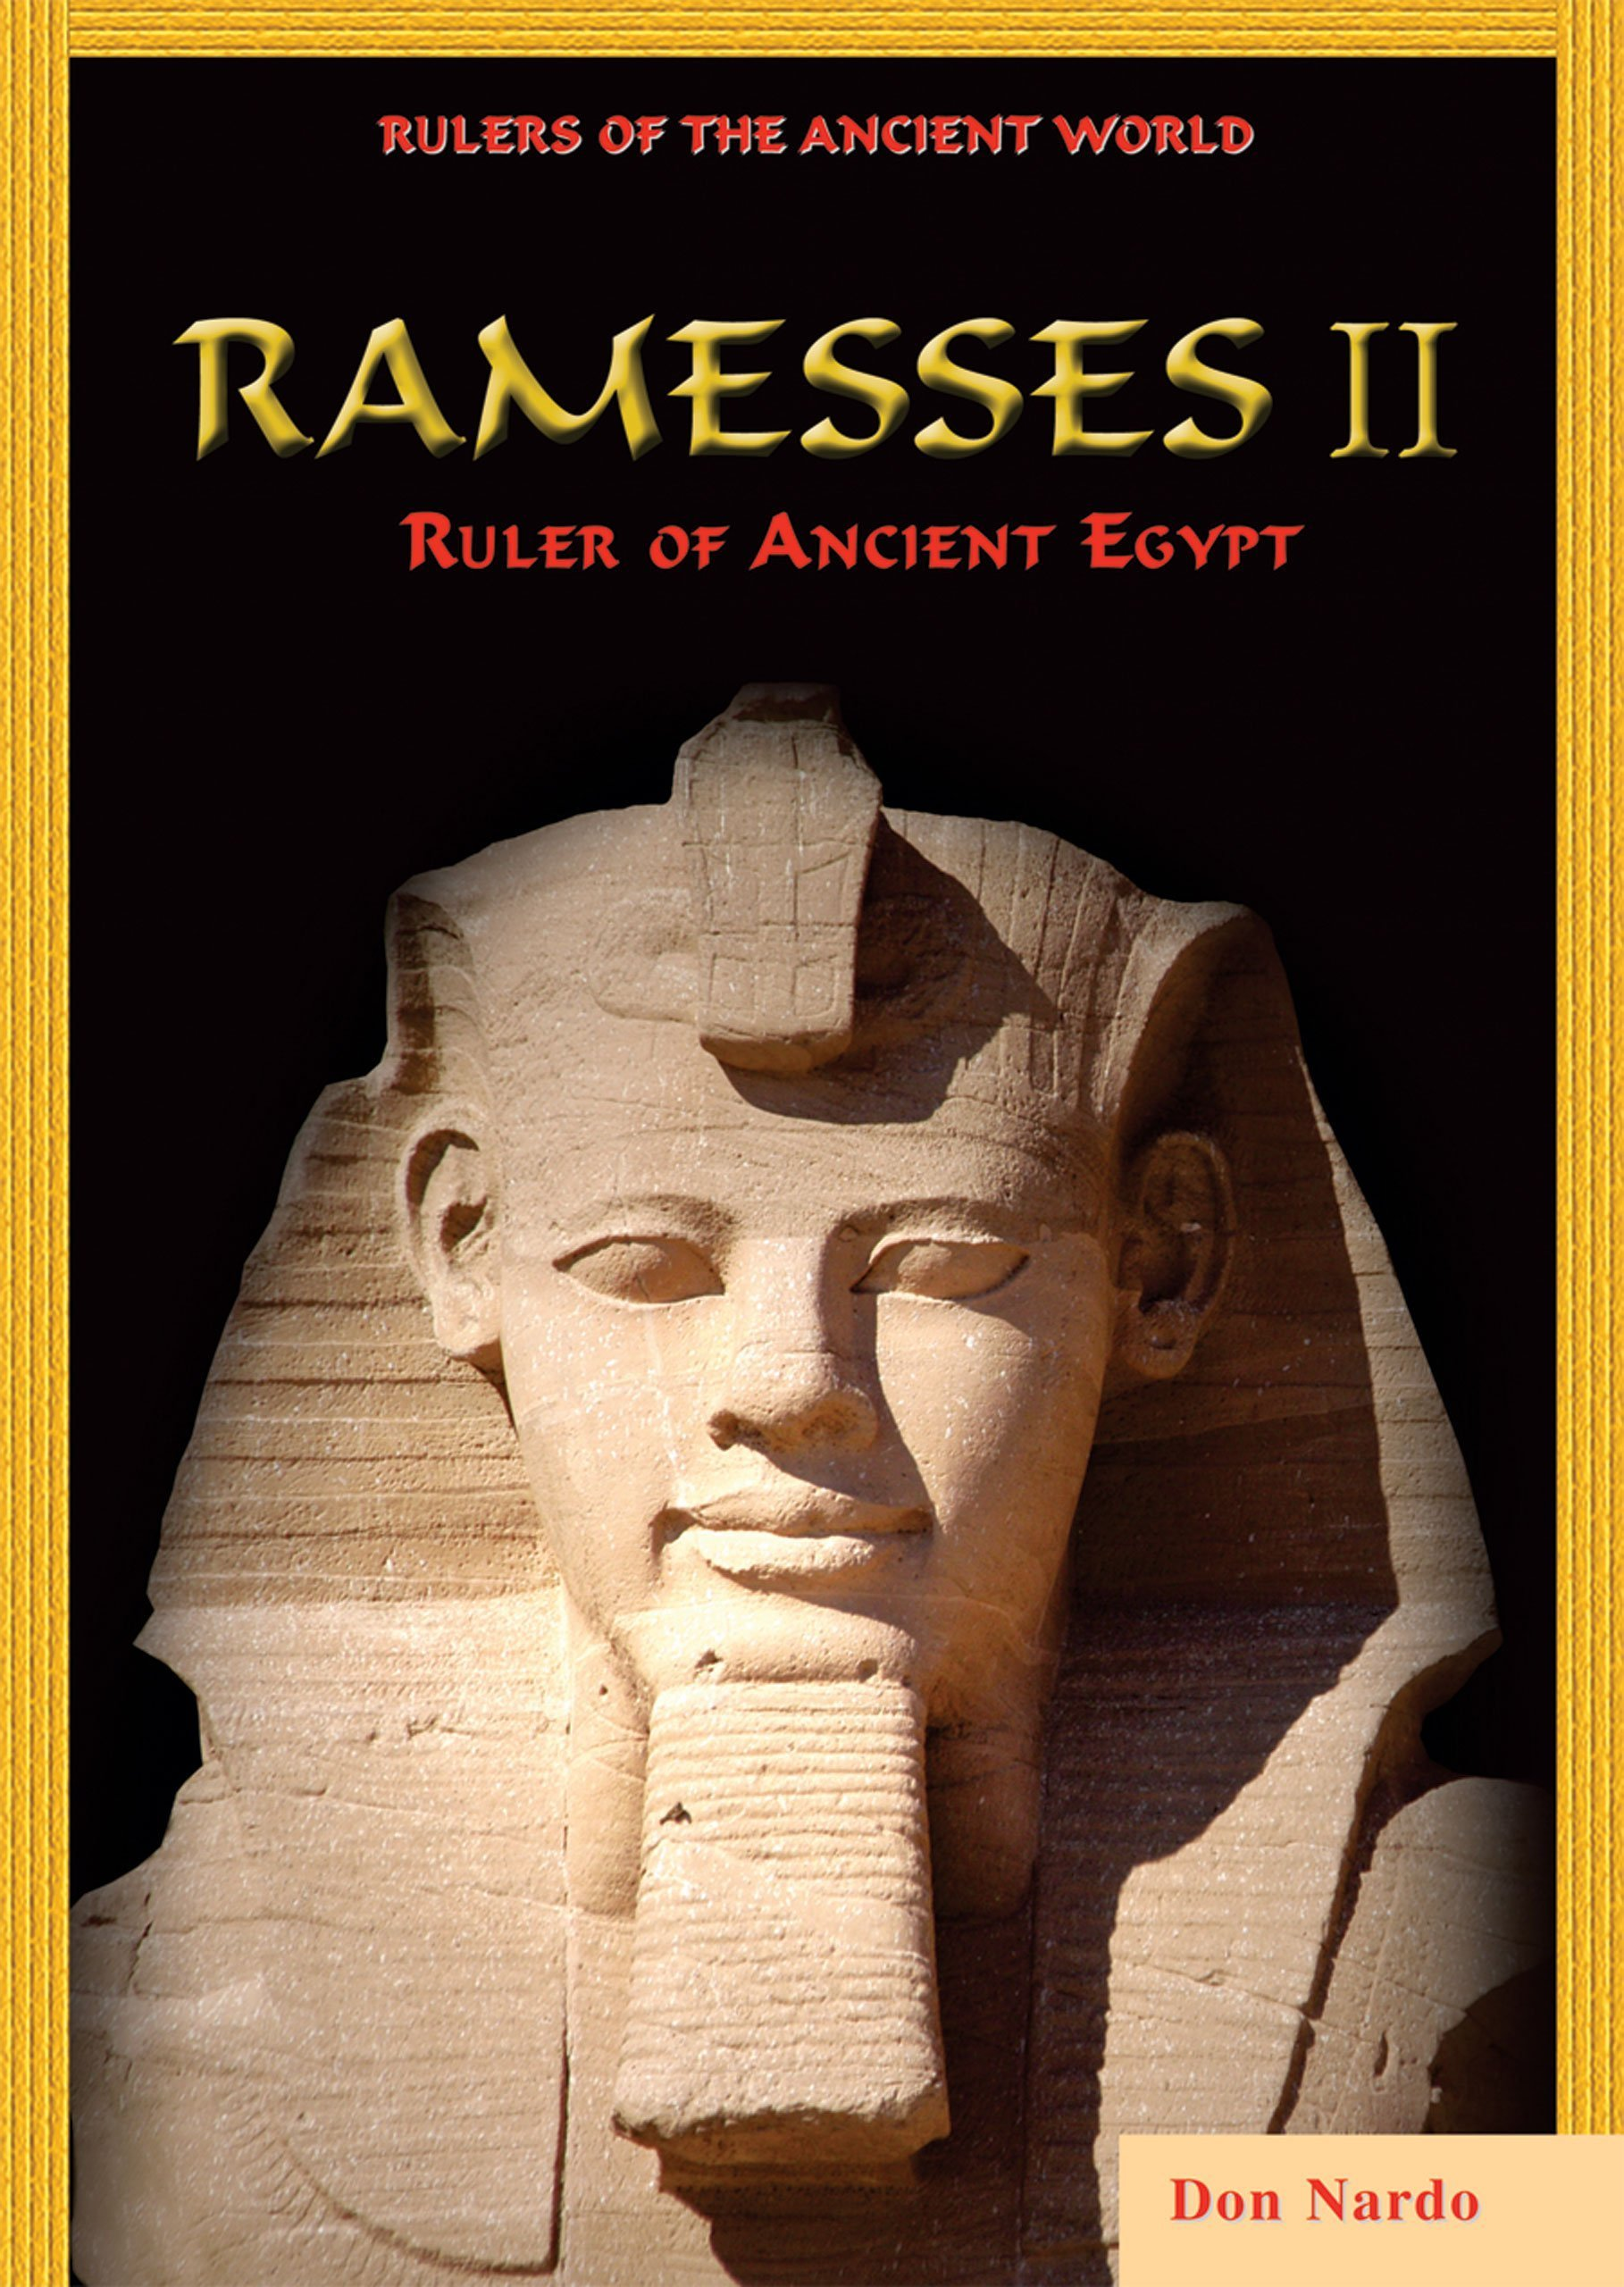 Ramesses II: Ruler of Ancient Egypt (Rulers of the Ancient World) PDF